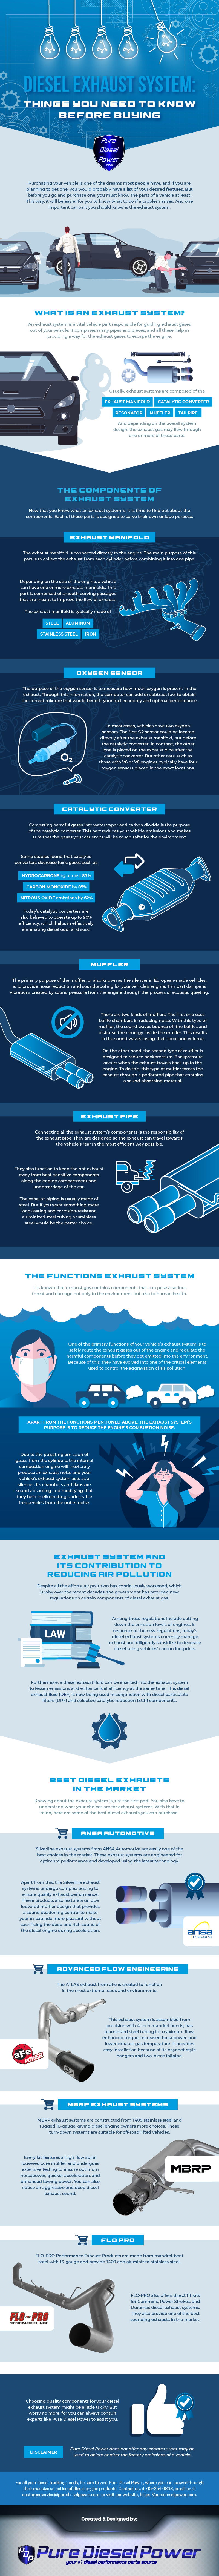 diesel-exhaust-system-things-to-know-before-buying-infographic